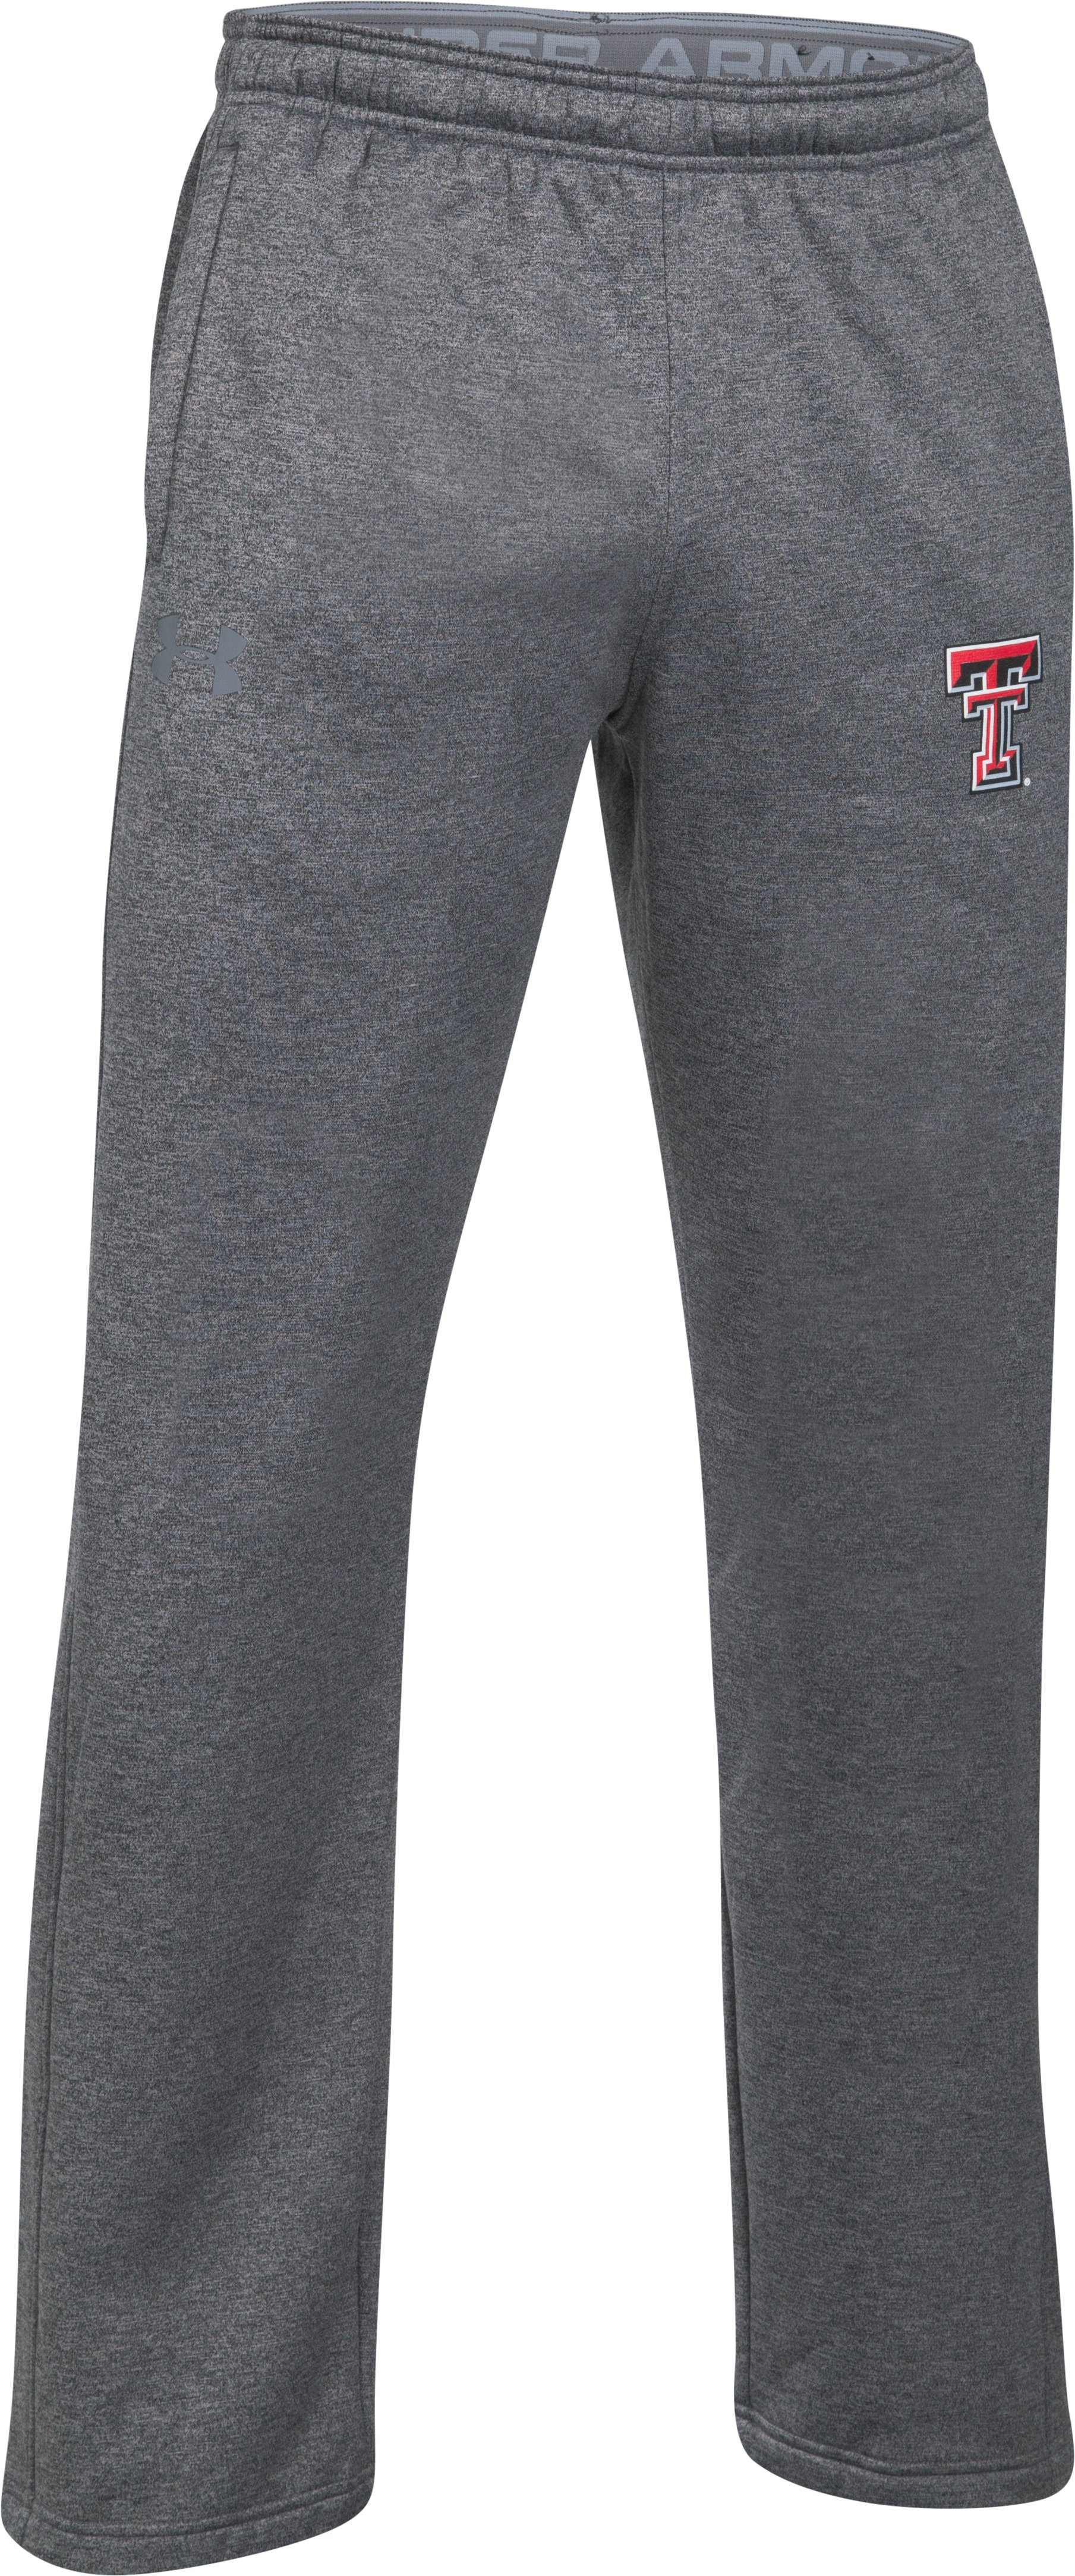 Men's Texas Tech Armour® Fleece Pants, True Gray Heather